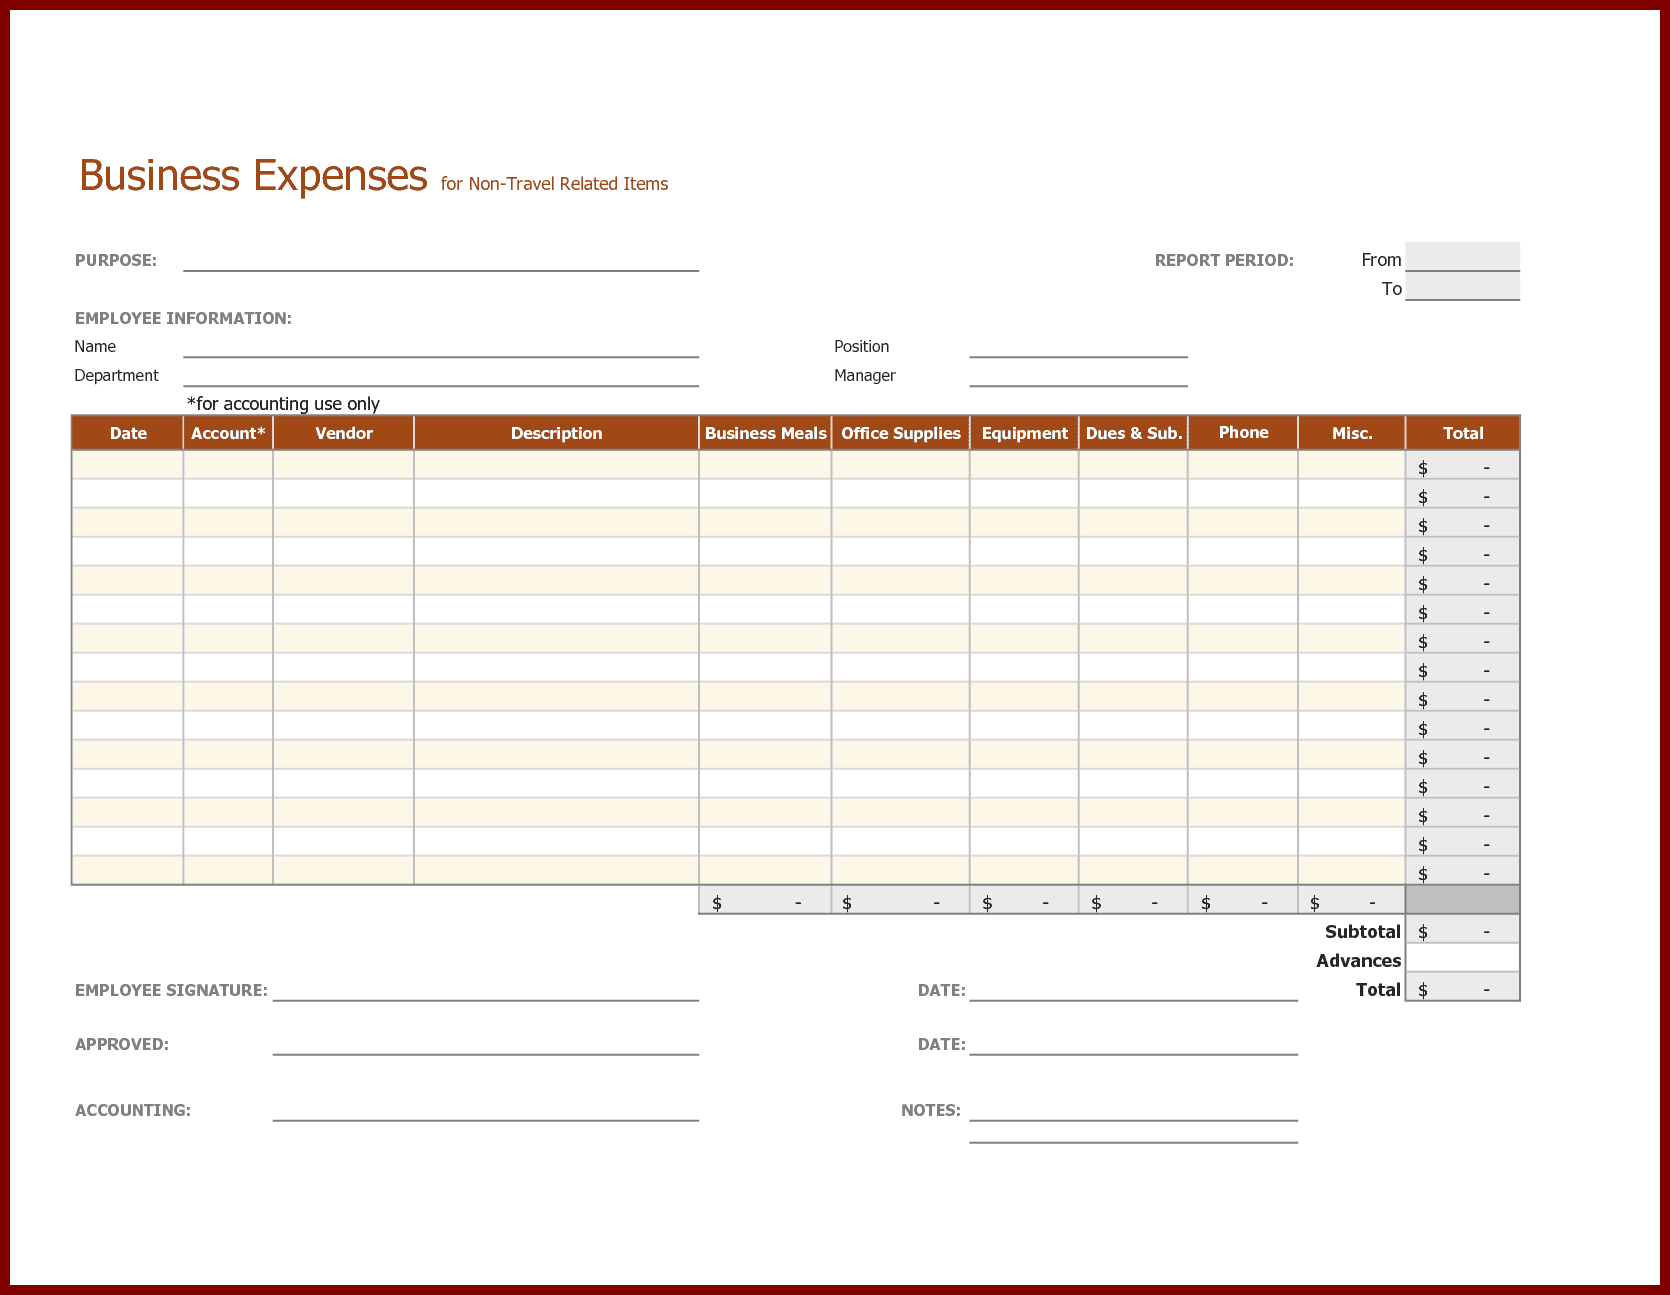 Free Business Travel Expense Report Template And Travel And Business Expense Report Rutgers